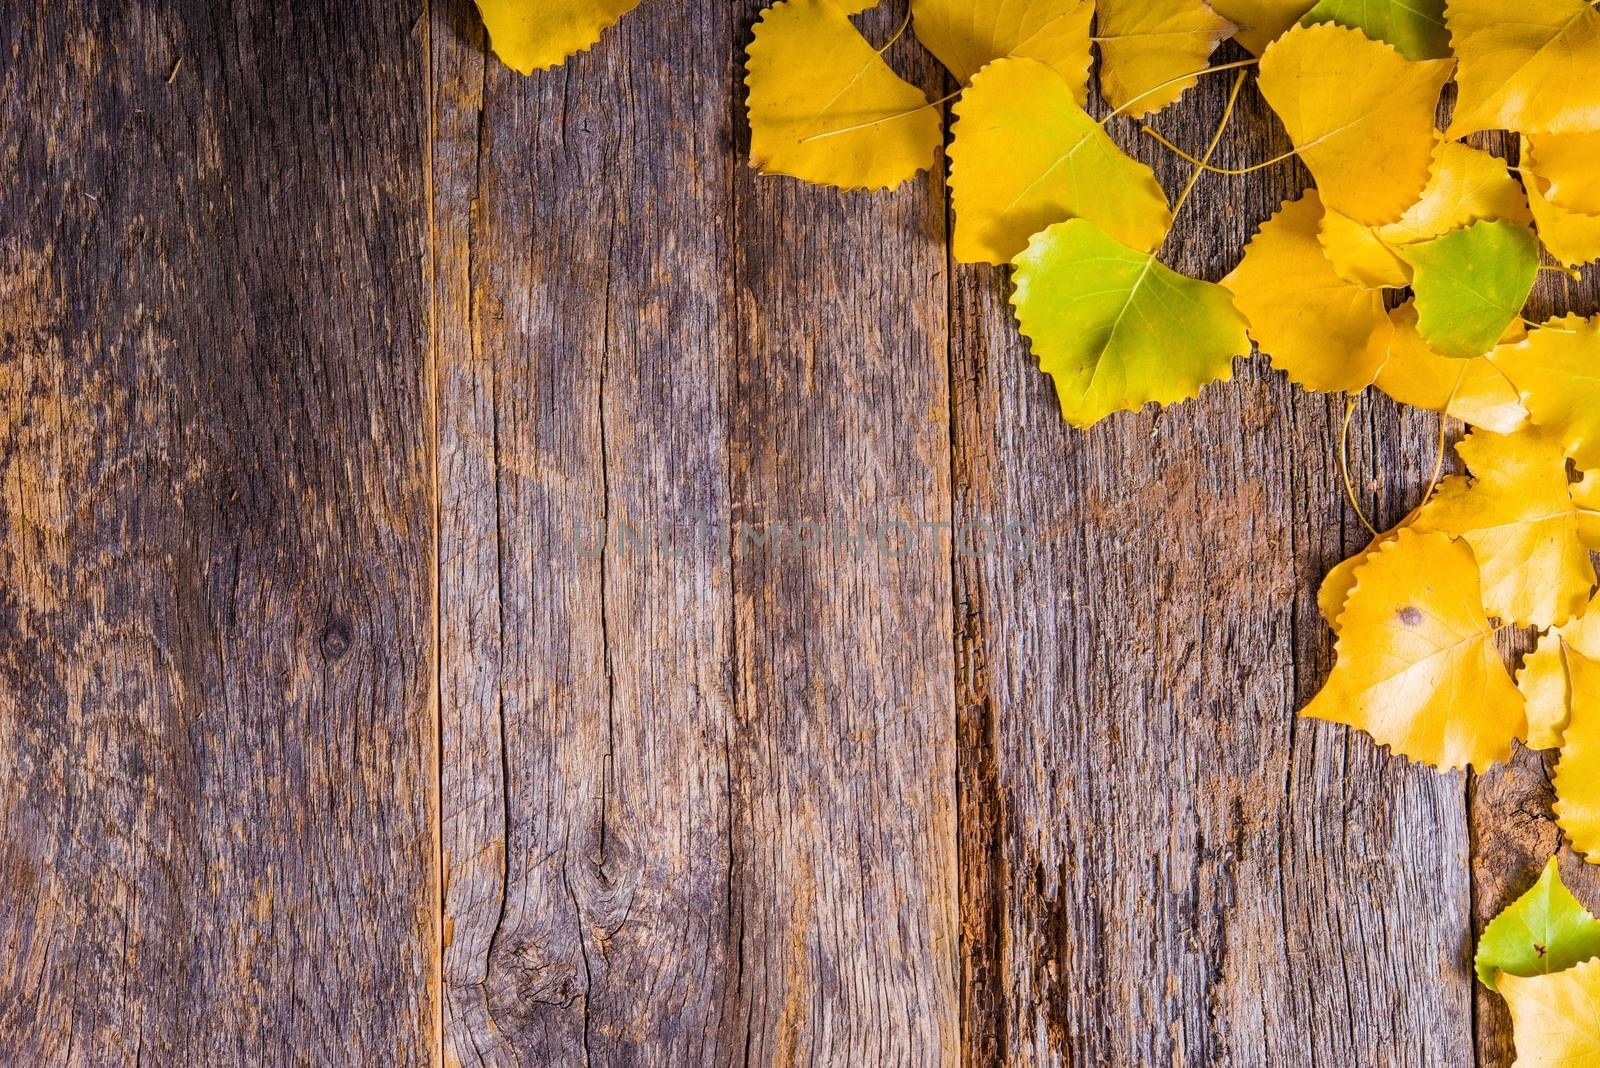 Autumn Fall Background. Aged Reclaimed Wood Planks and Golden Aspen Tree Leaves. Copy Space Area. Fall wooden Backdrop.